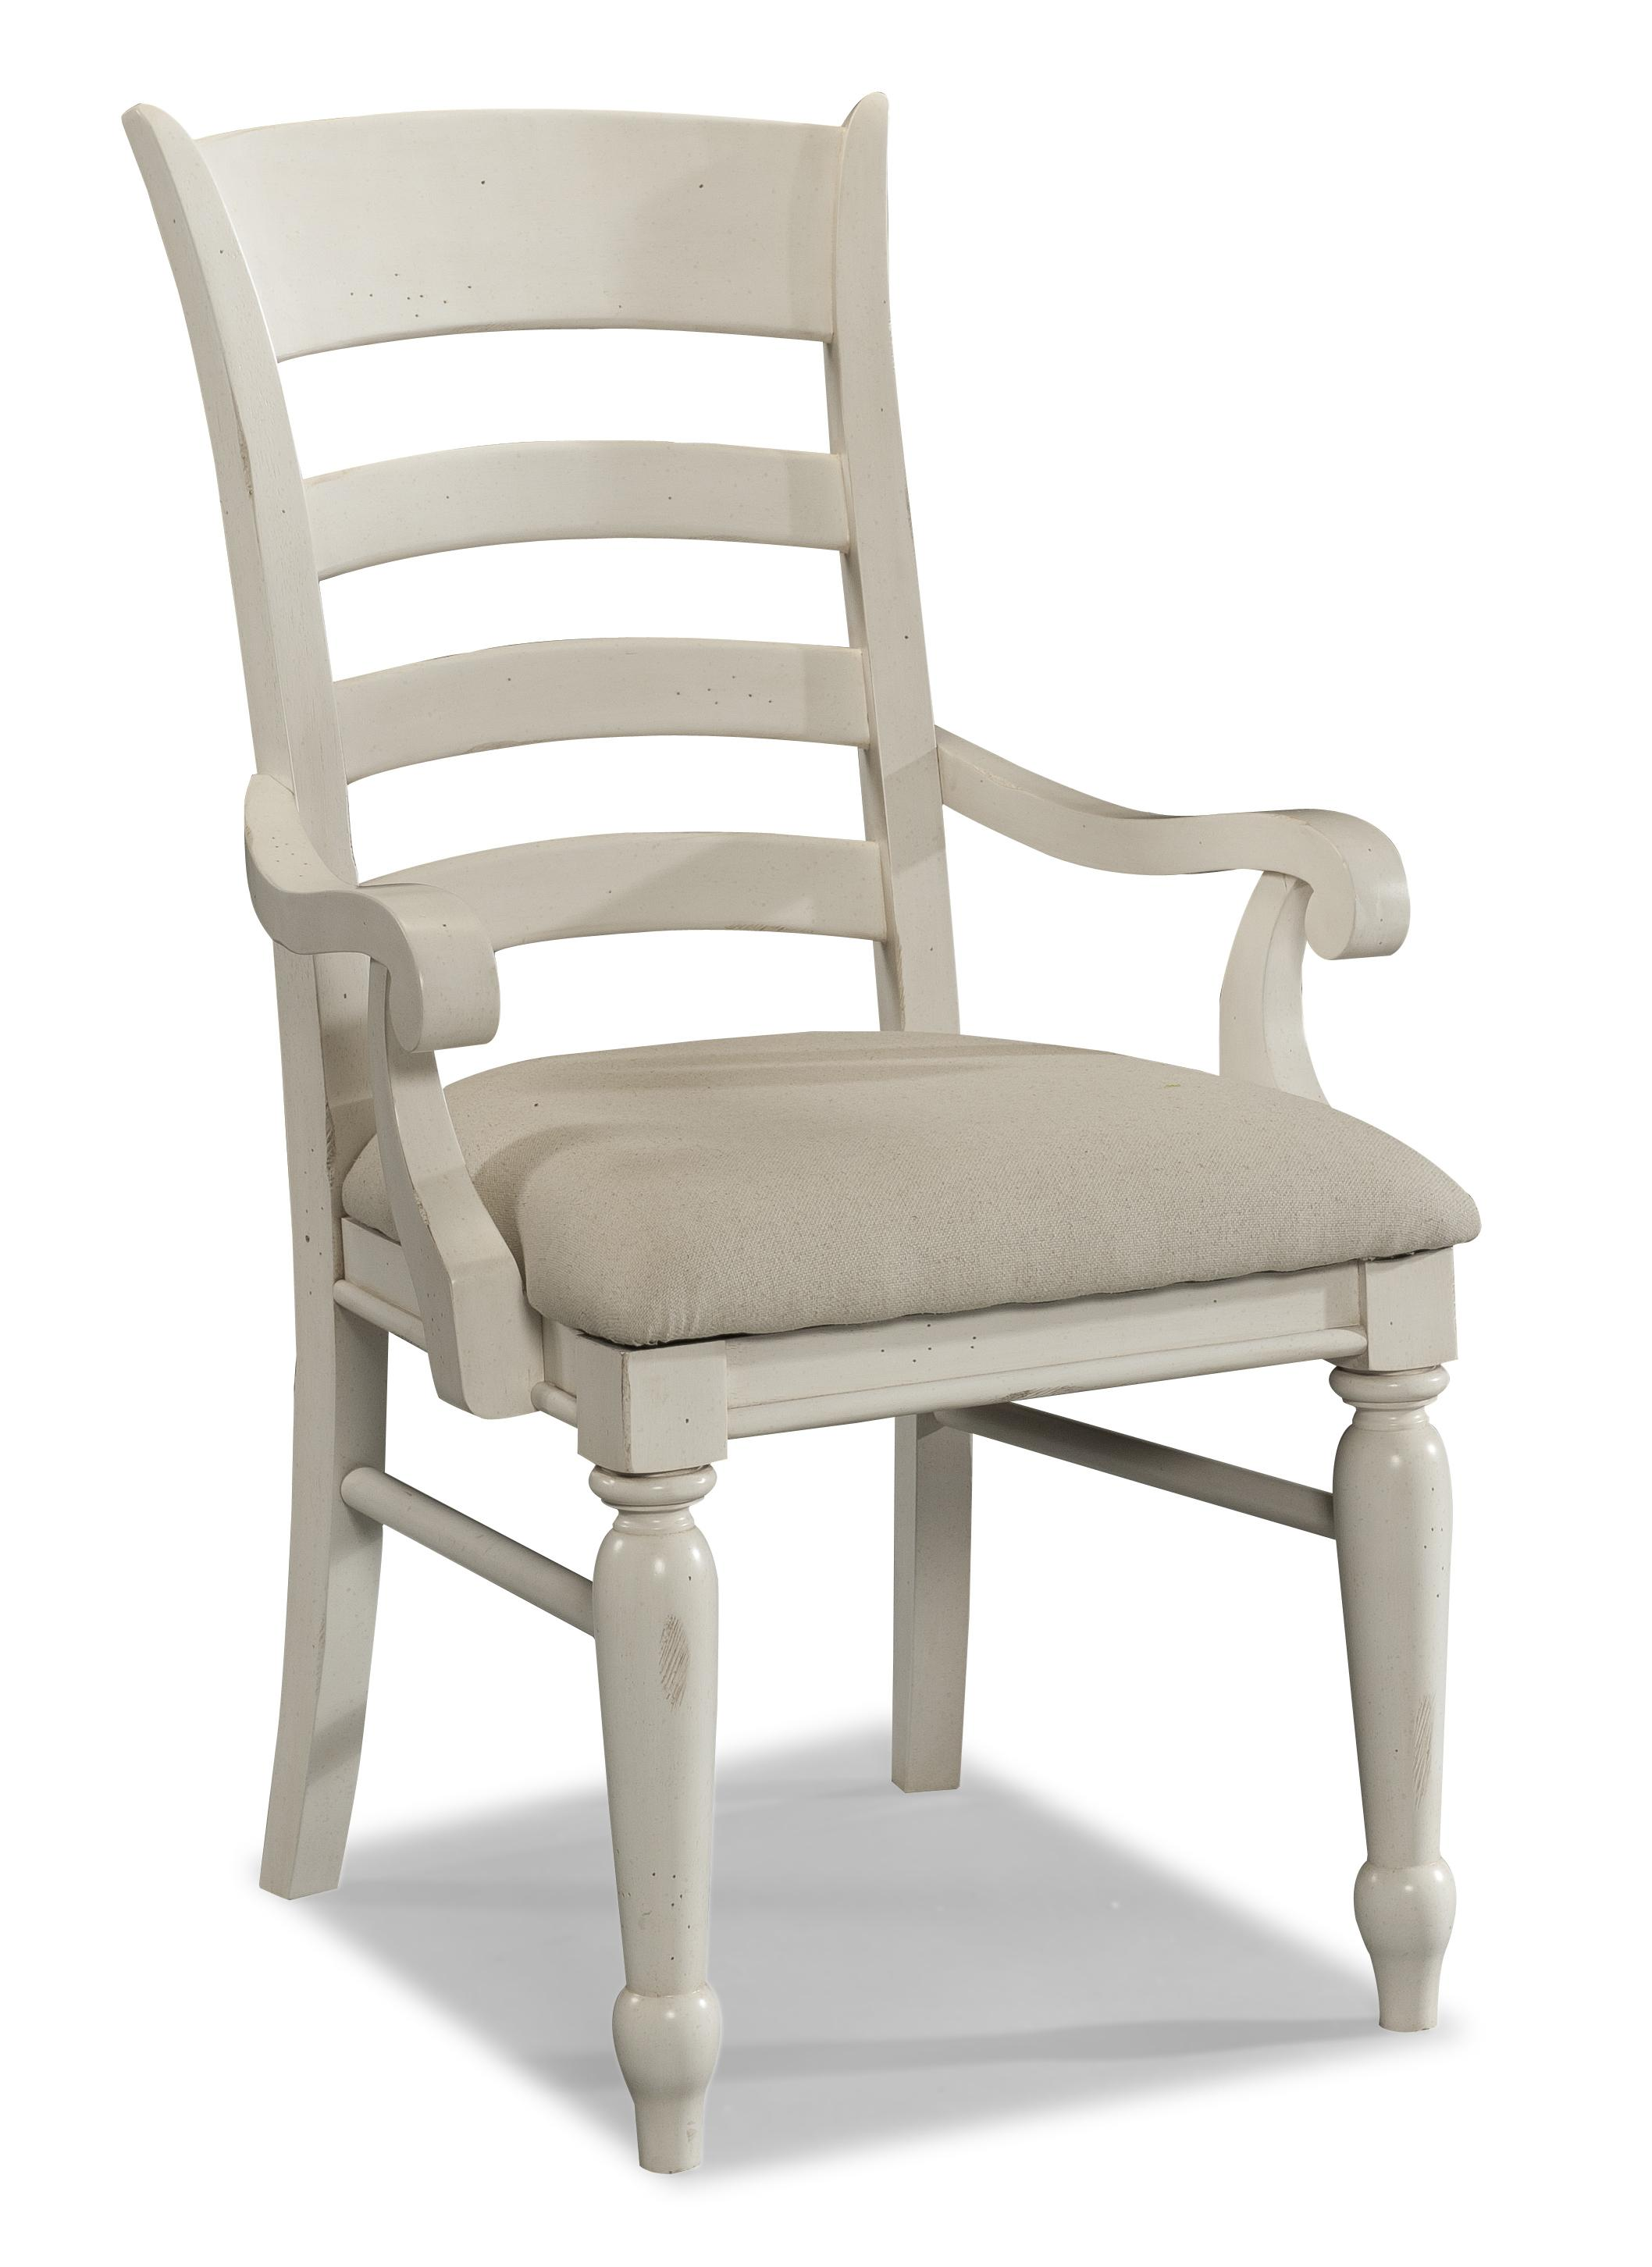 Easton Collection Sea Breeze White Ladder Back Arm Chair  : products2Fcarolinapreservesbyklaussner2Fcolor2Fsea20breeze424 90620drc b0 from www.belfortfurniture.com size 2116 x 2904 jpeg 271kB